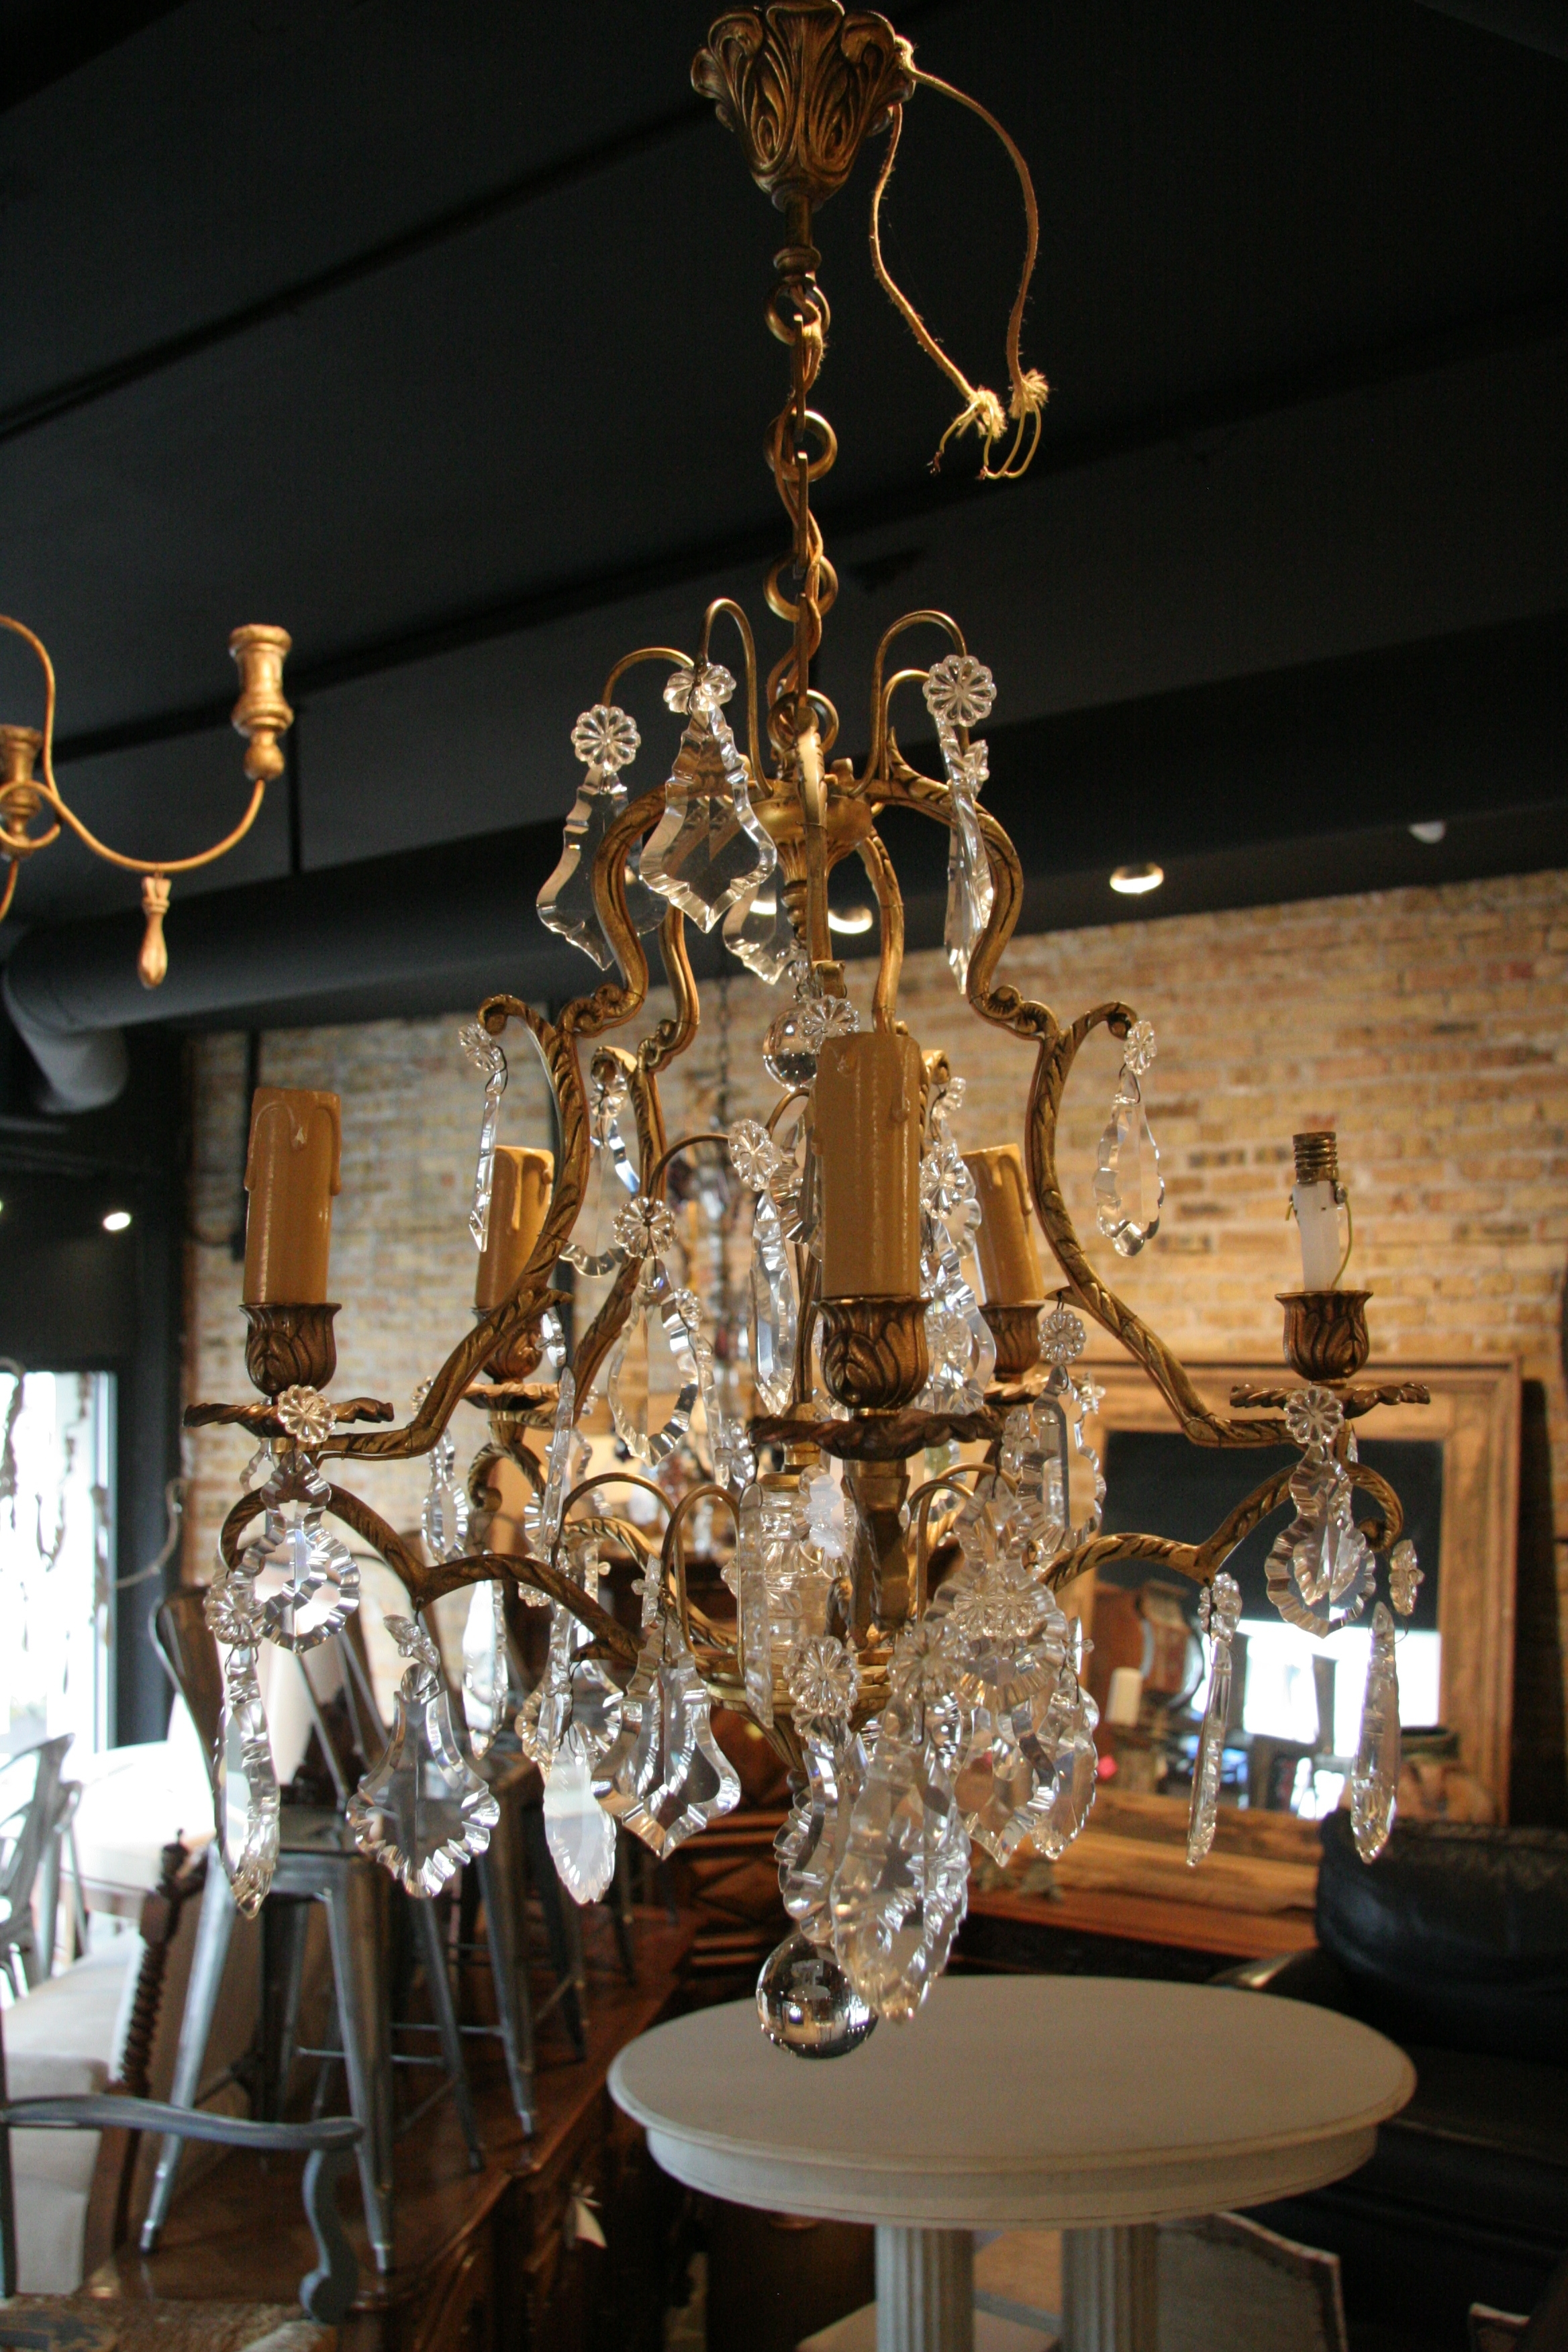 Widely Used Antique French 5 Light Brass And Crystal Chandelier – Sold – Within Antique French Chandeliers (View 15 of 15)